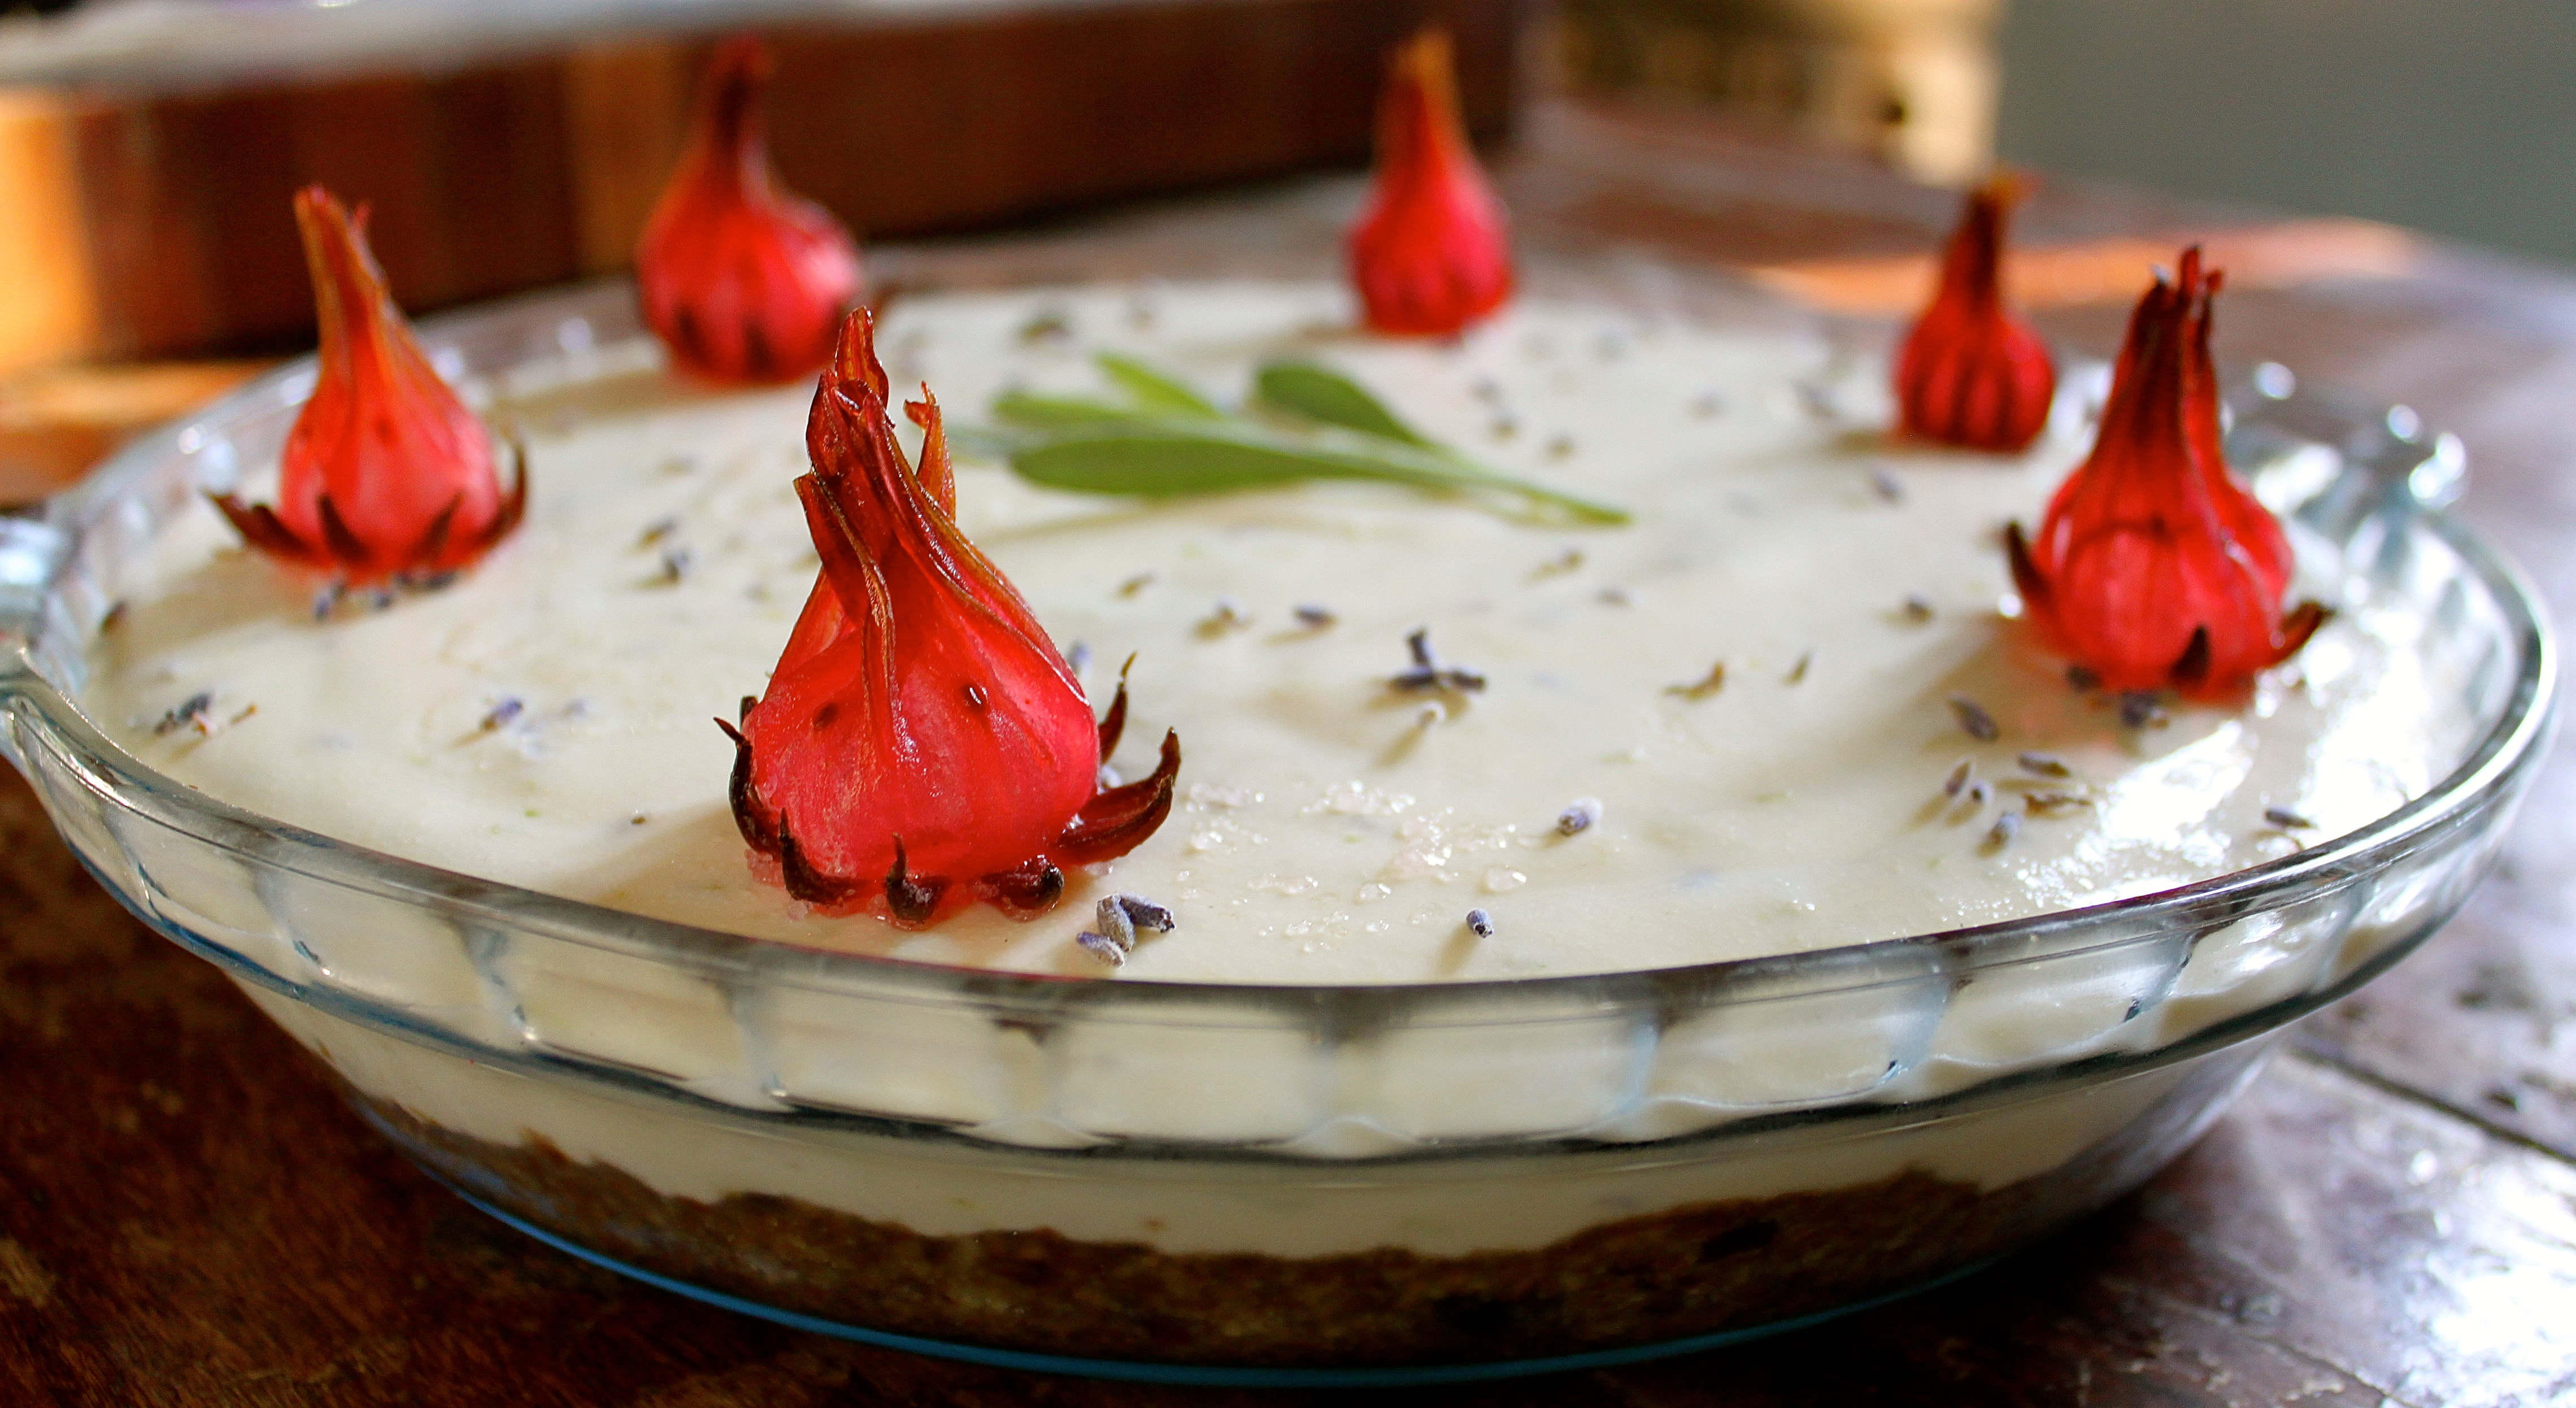 Lavender & Lemon Cream Pie aflame with Rosella.